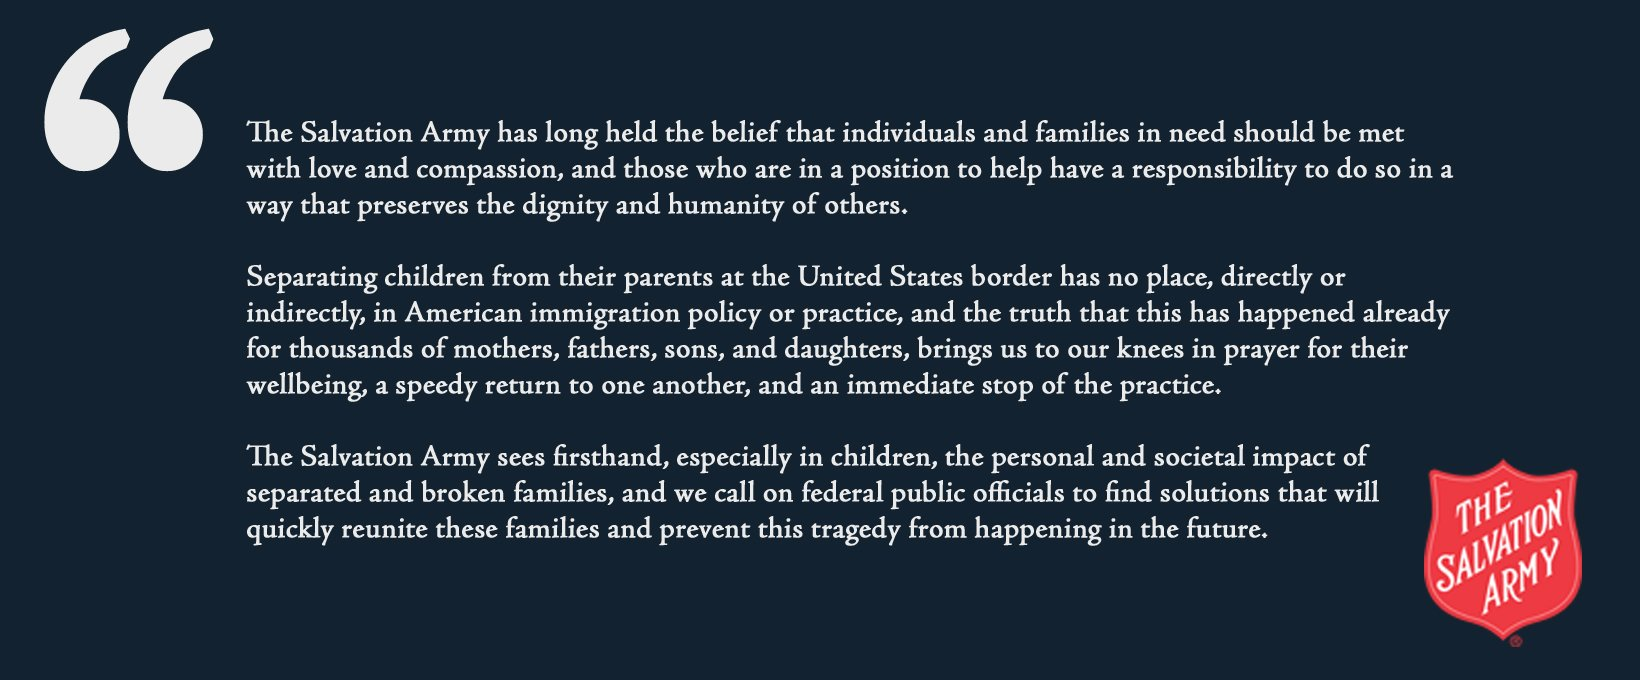 The Salvation Army Official Statement on Separation of Families at the U.S. Border: https://t.co/o2N8O7p1SS https://t.co/GZLKVi1oUX